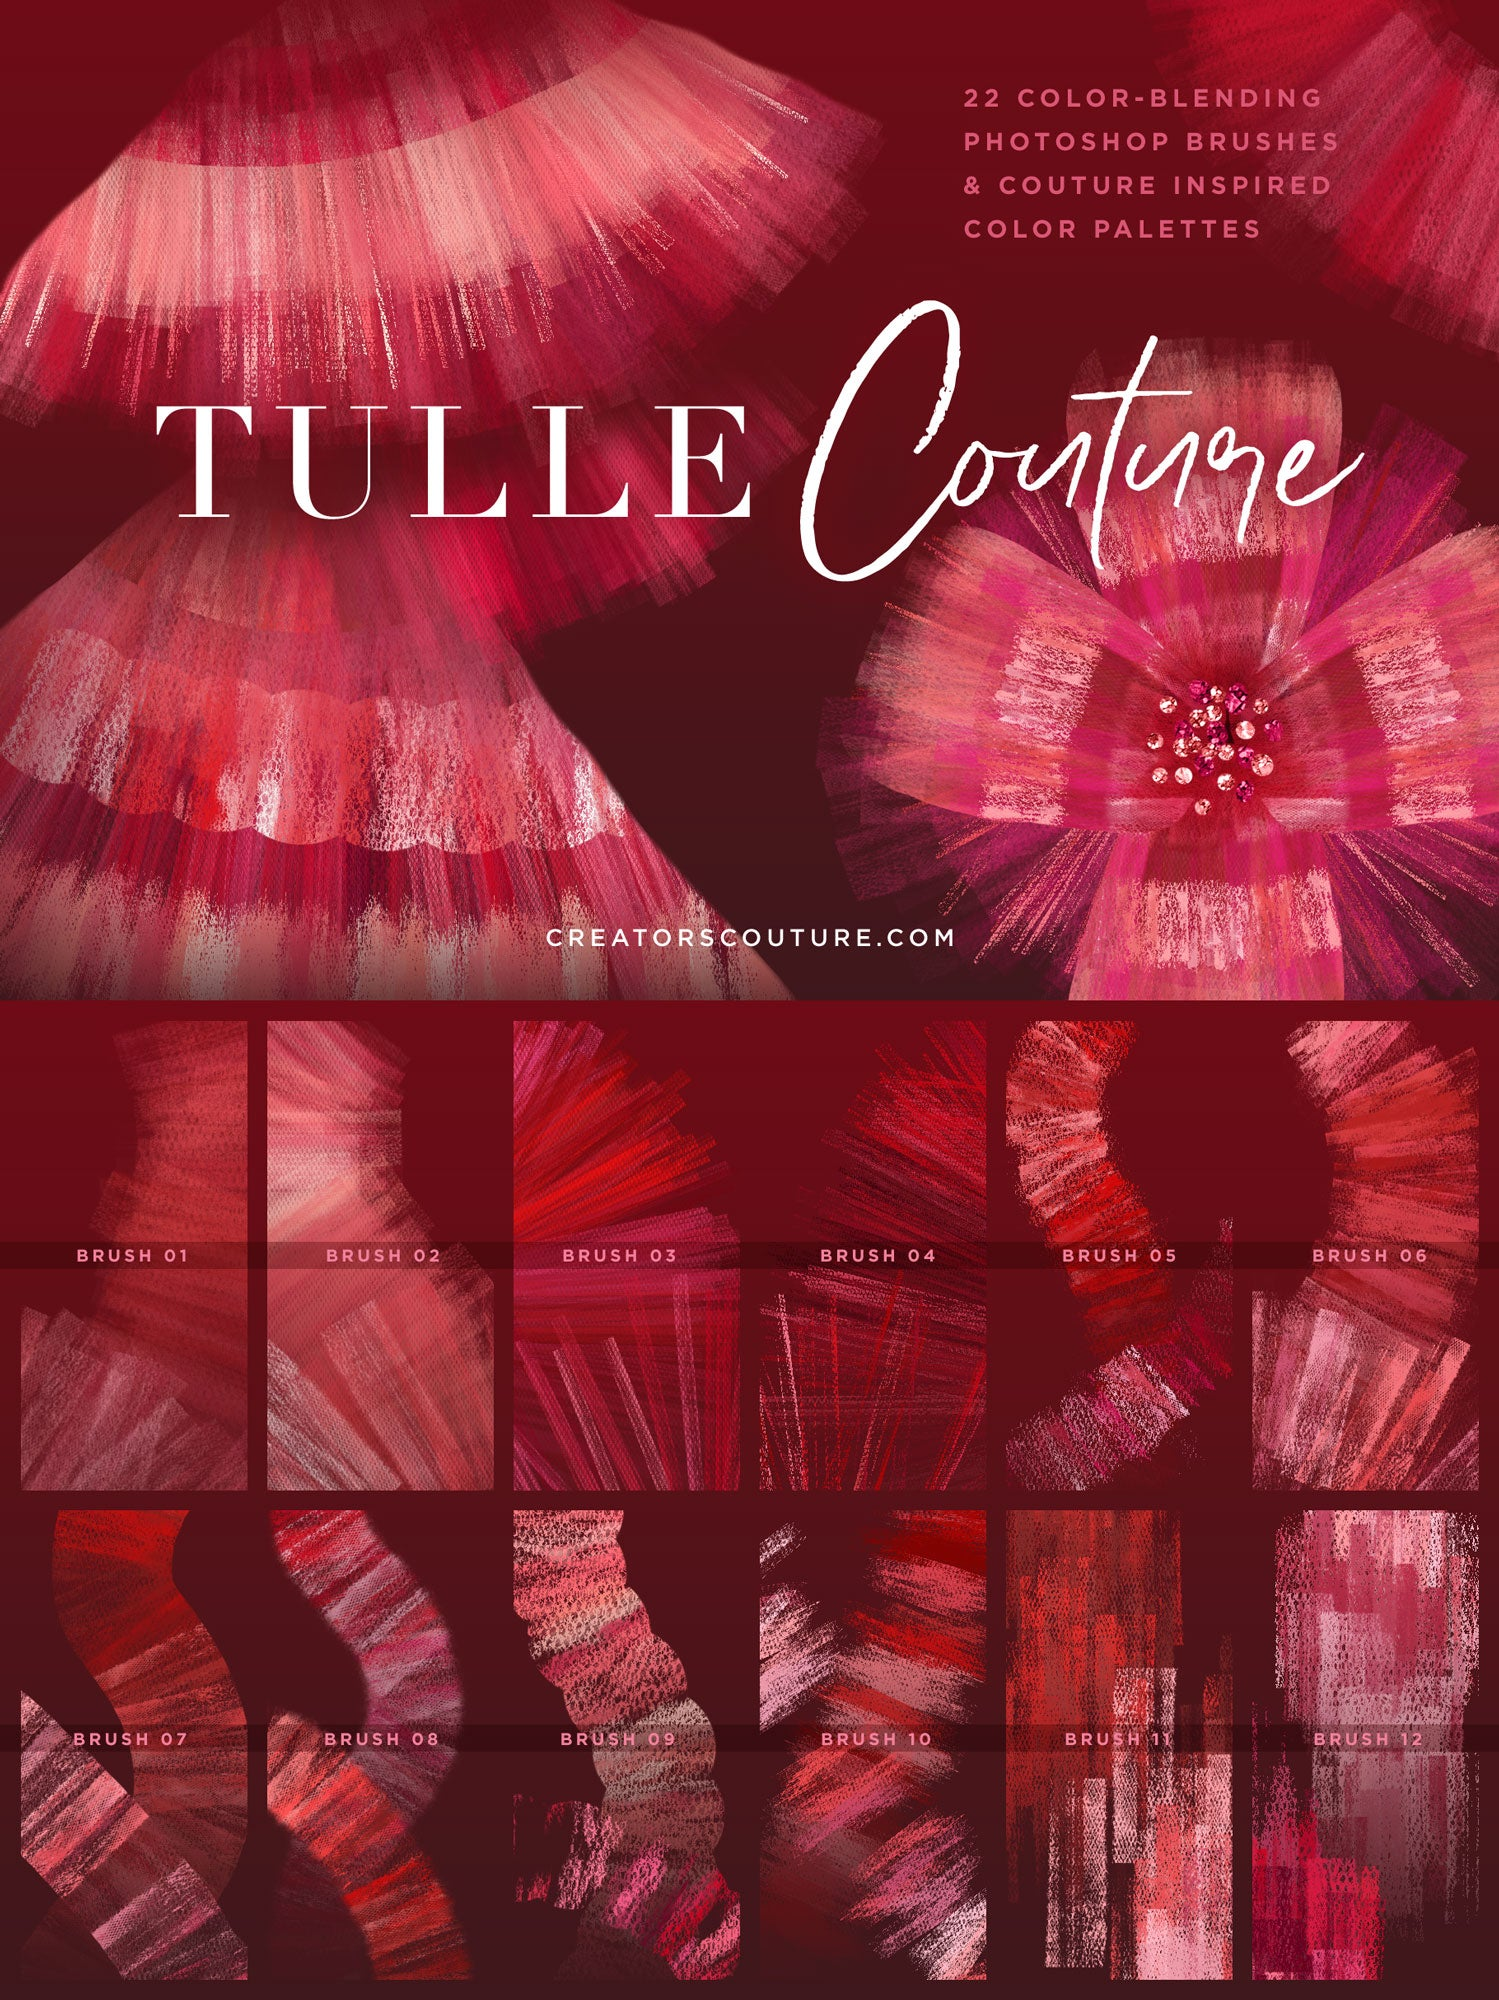 Tulle and organza couture multi-color Photoshop brushes, runway inspired